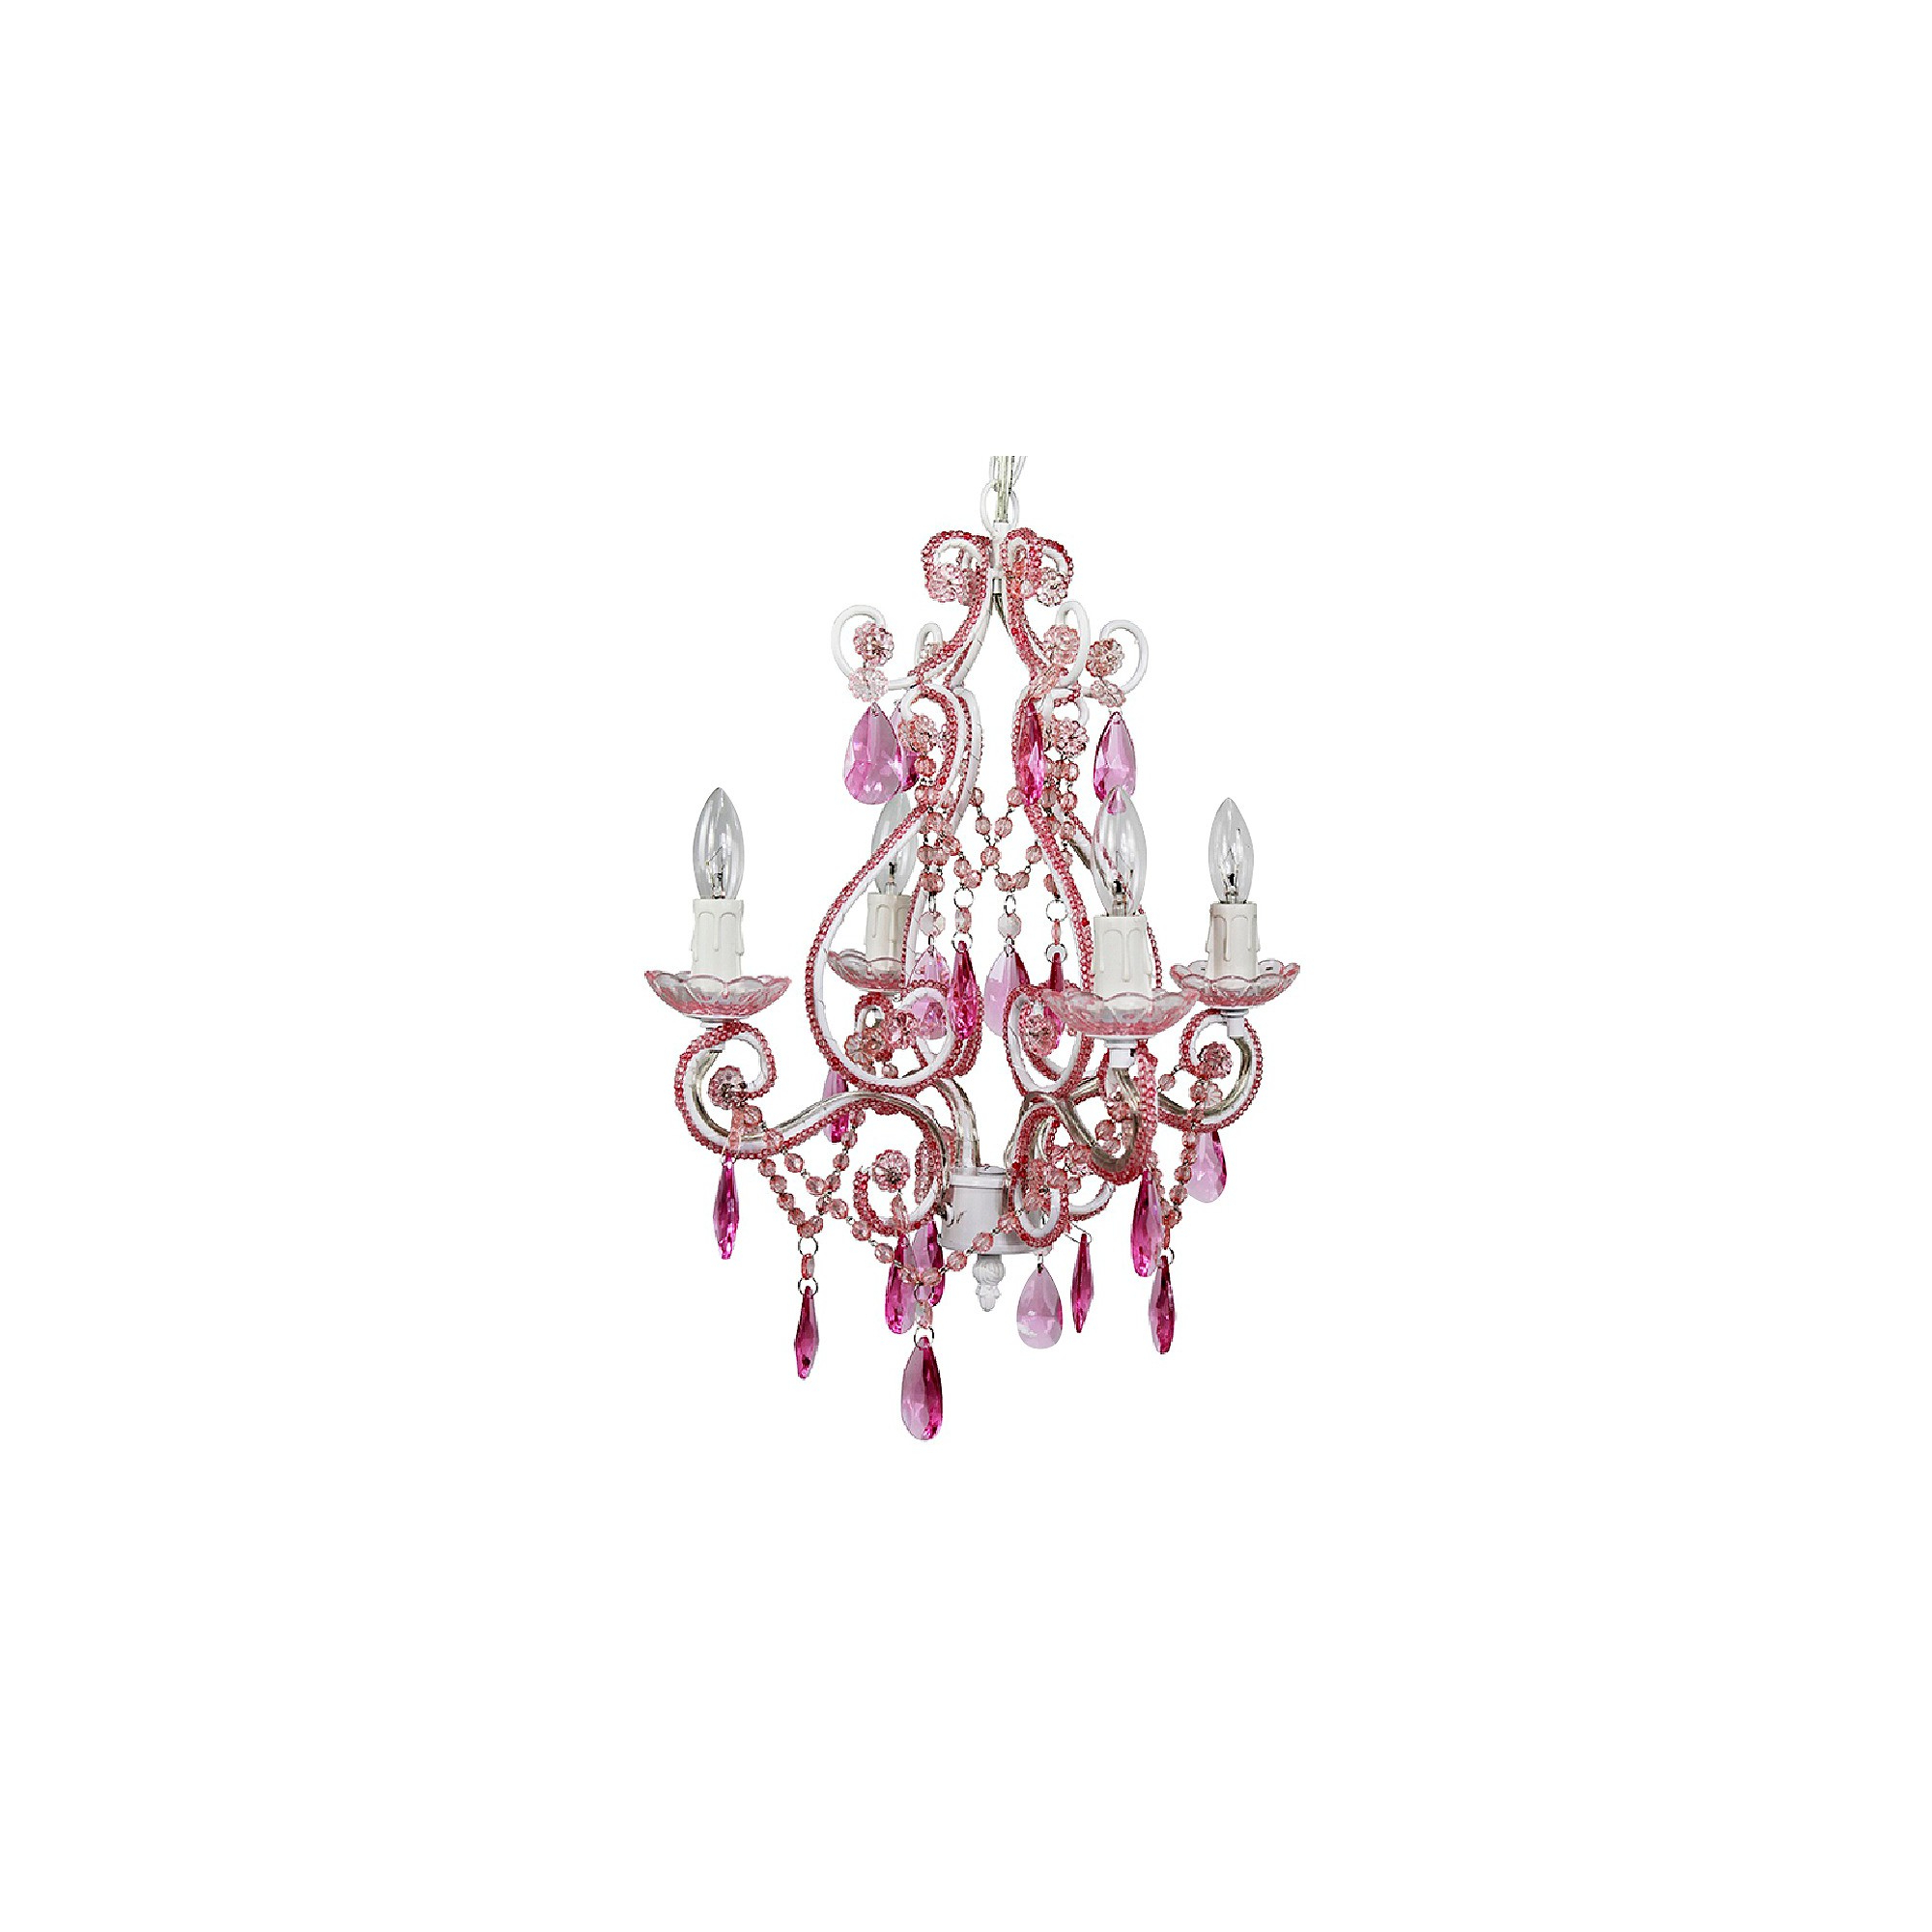 Well Known Aldora 4 Light Candle Style Chandeliers Within Three Posts Aldora 4 Light Candle Style Chandelier In  (View 21 of 25)